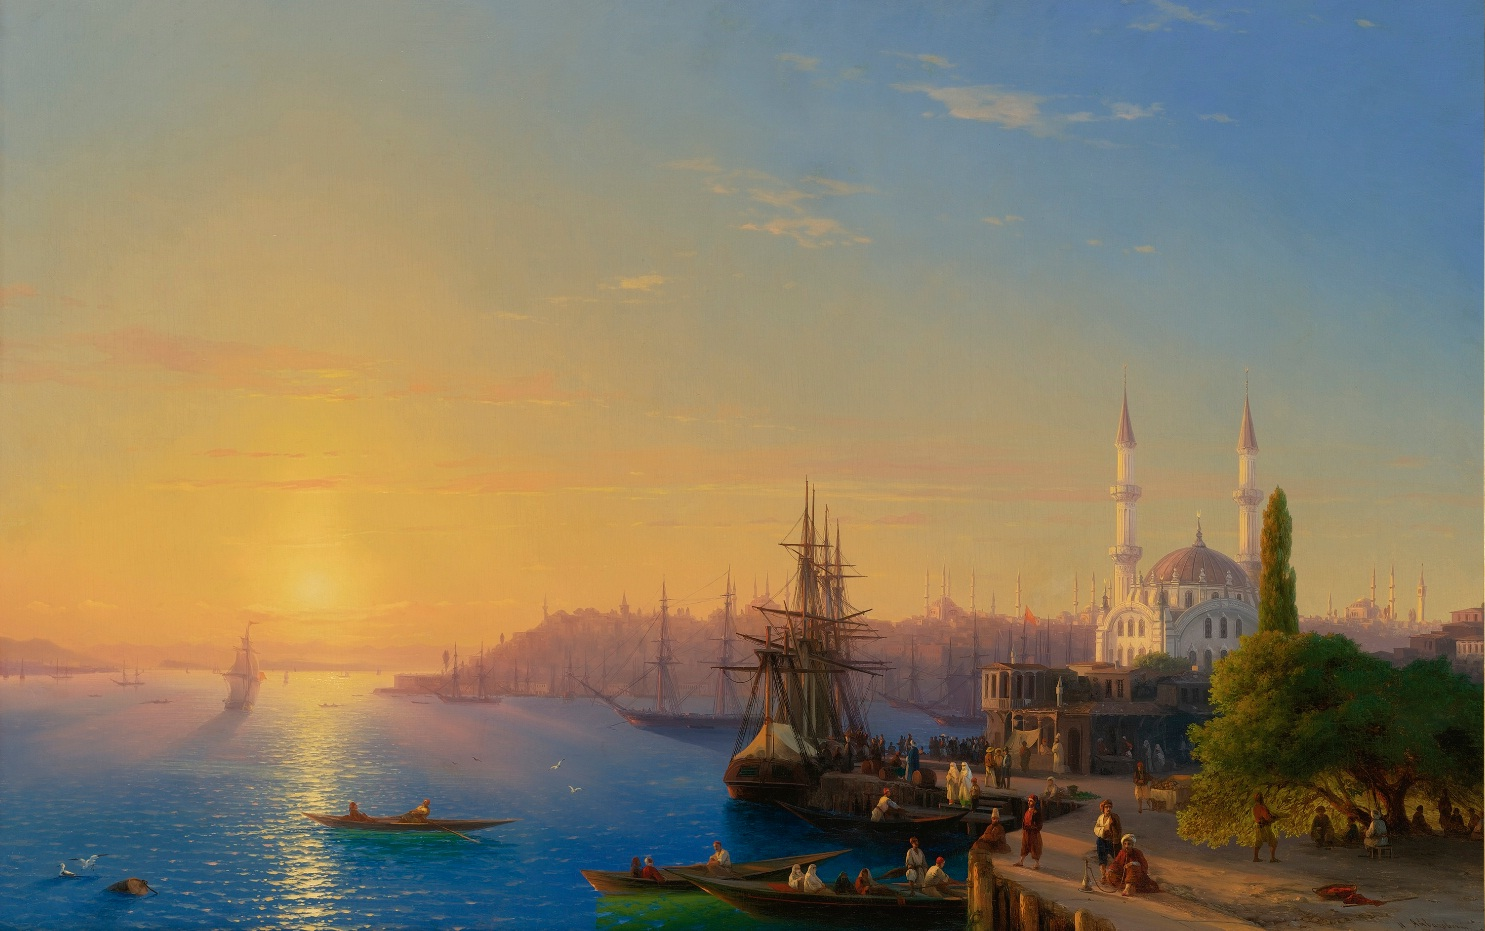 View of Constantinople and the Bosphorus by Aivazovsky © https://commons.wikimedia.org/w/index.php?curid=21747515